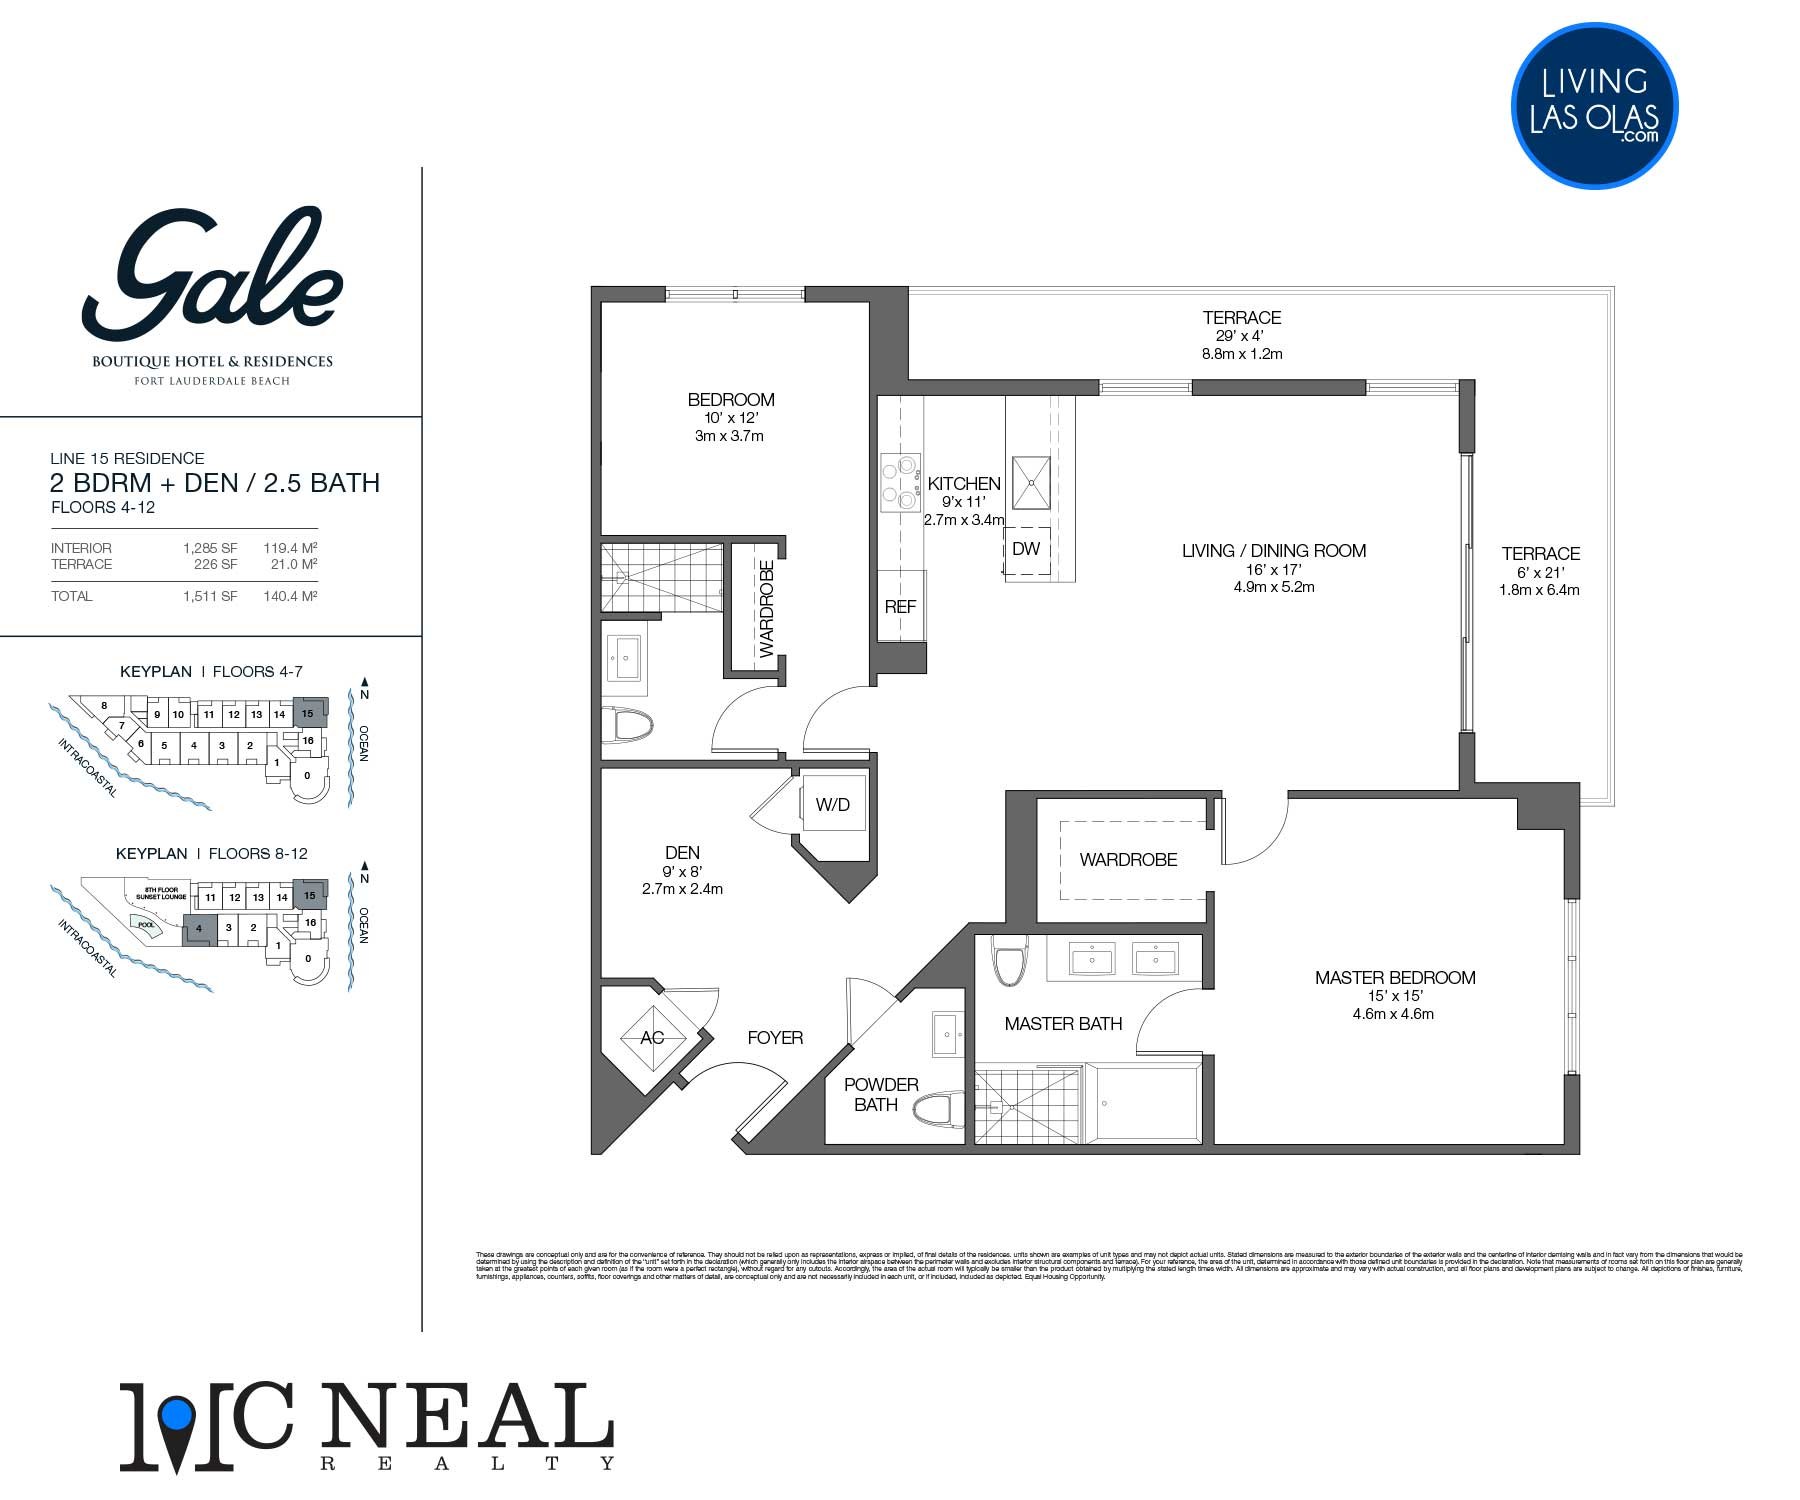 Tiffany House Condos Floor Plans Line 15